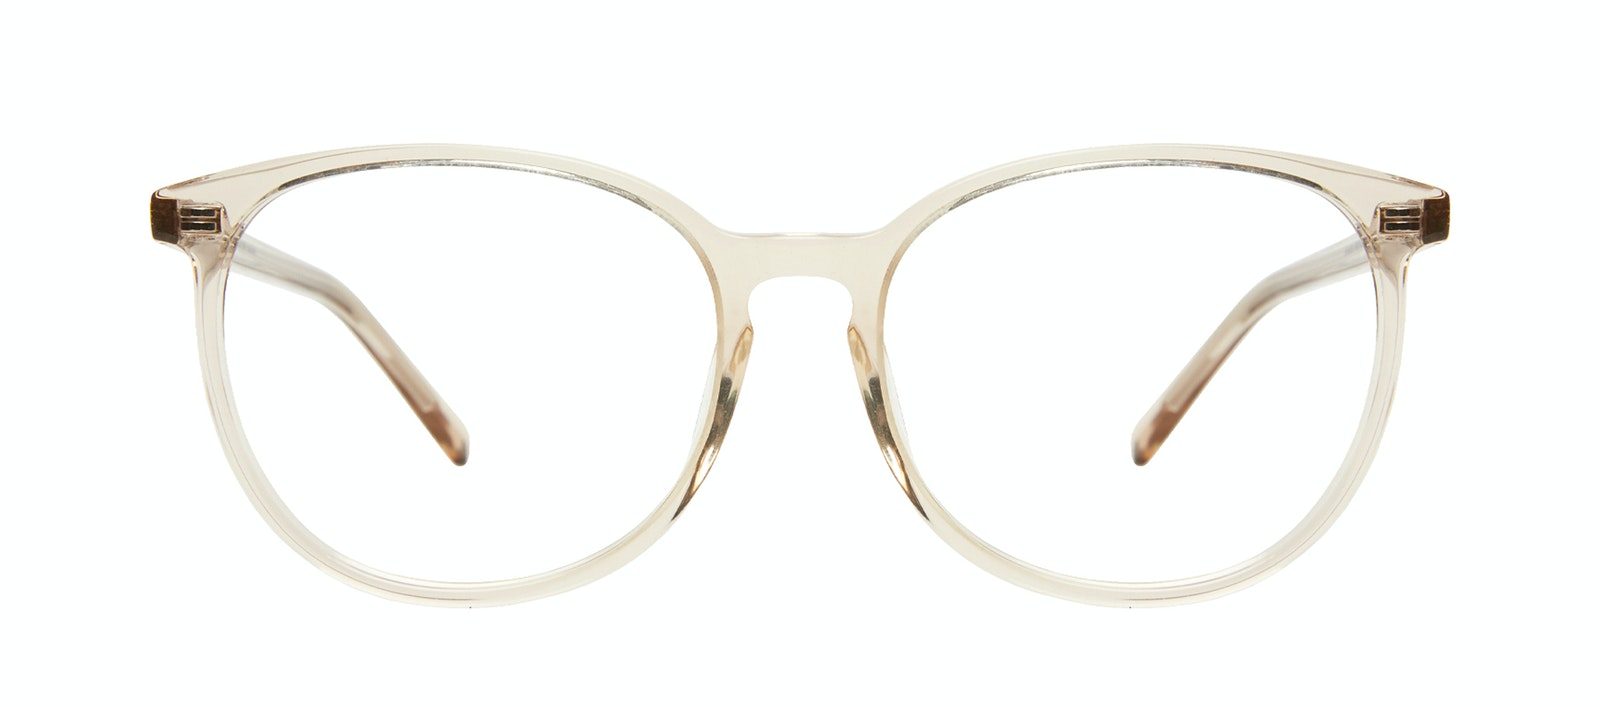 Affordable Fashion Glasses Round Eyeglasses Women Femme Libre Margo Front